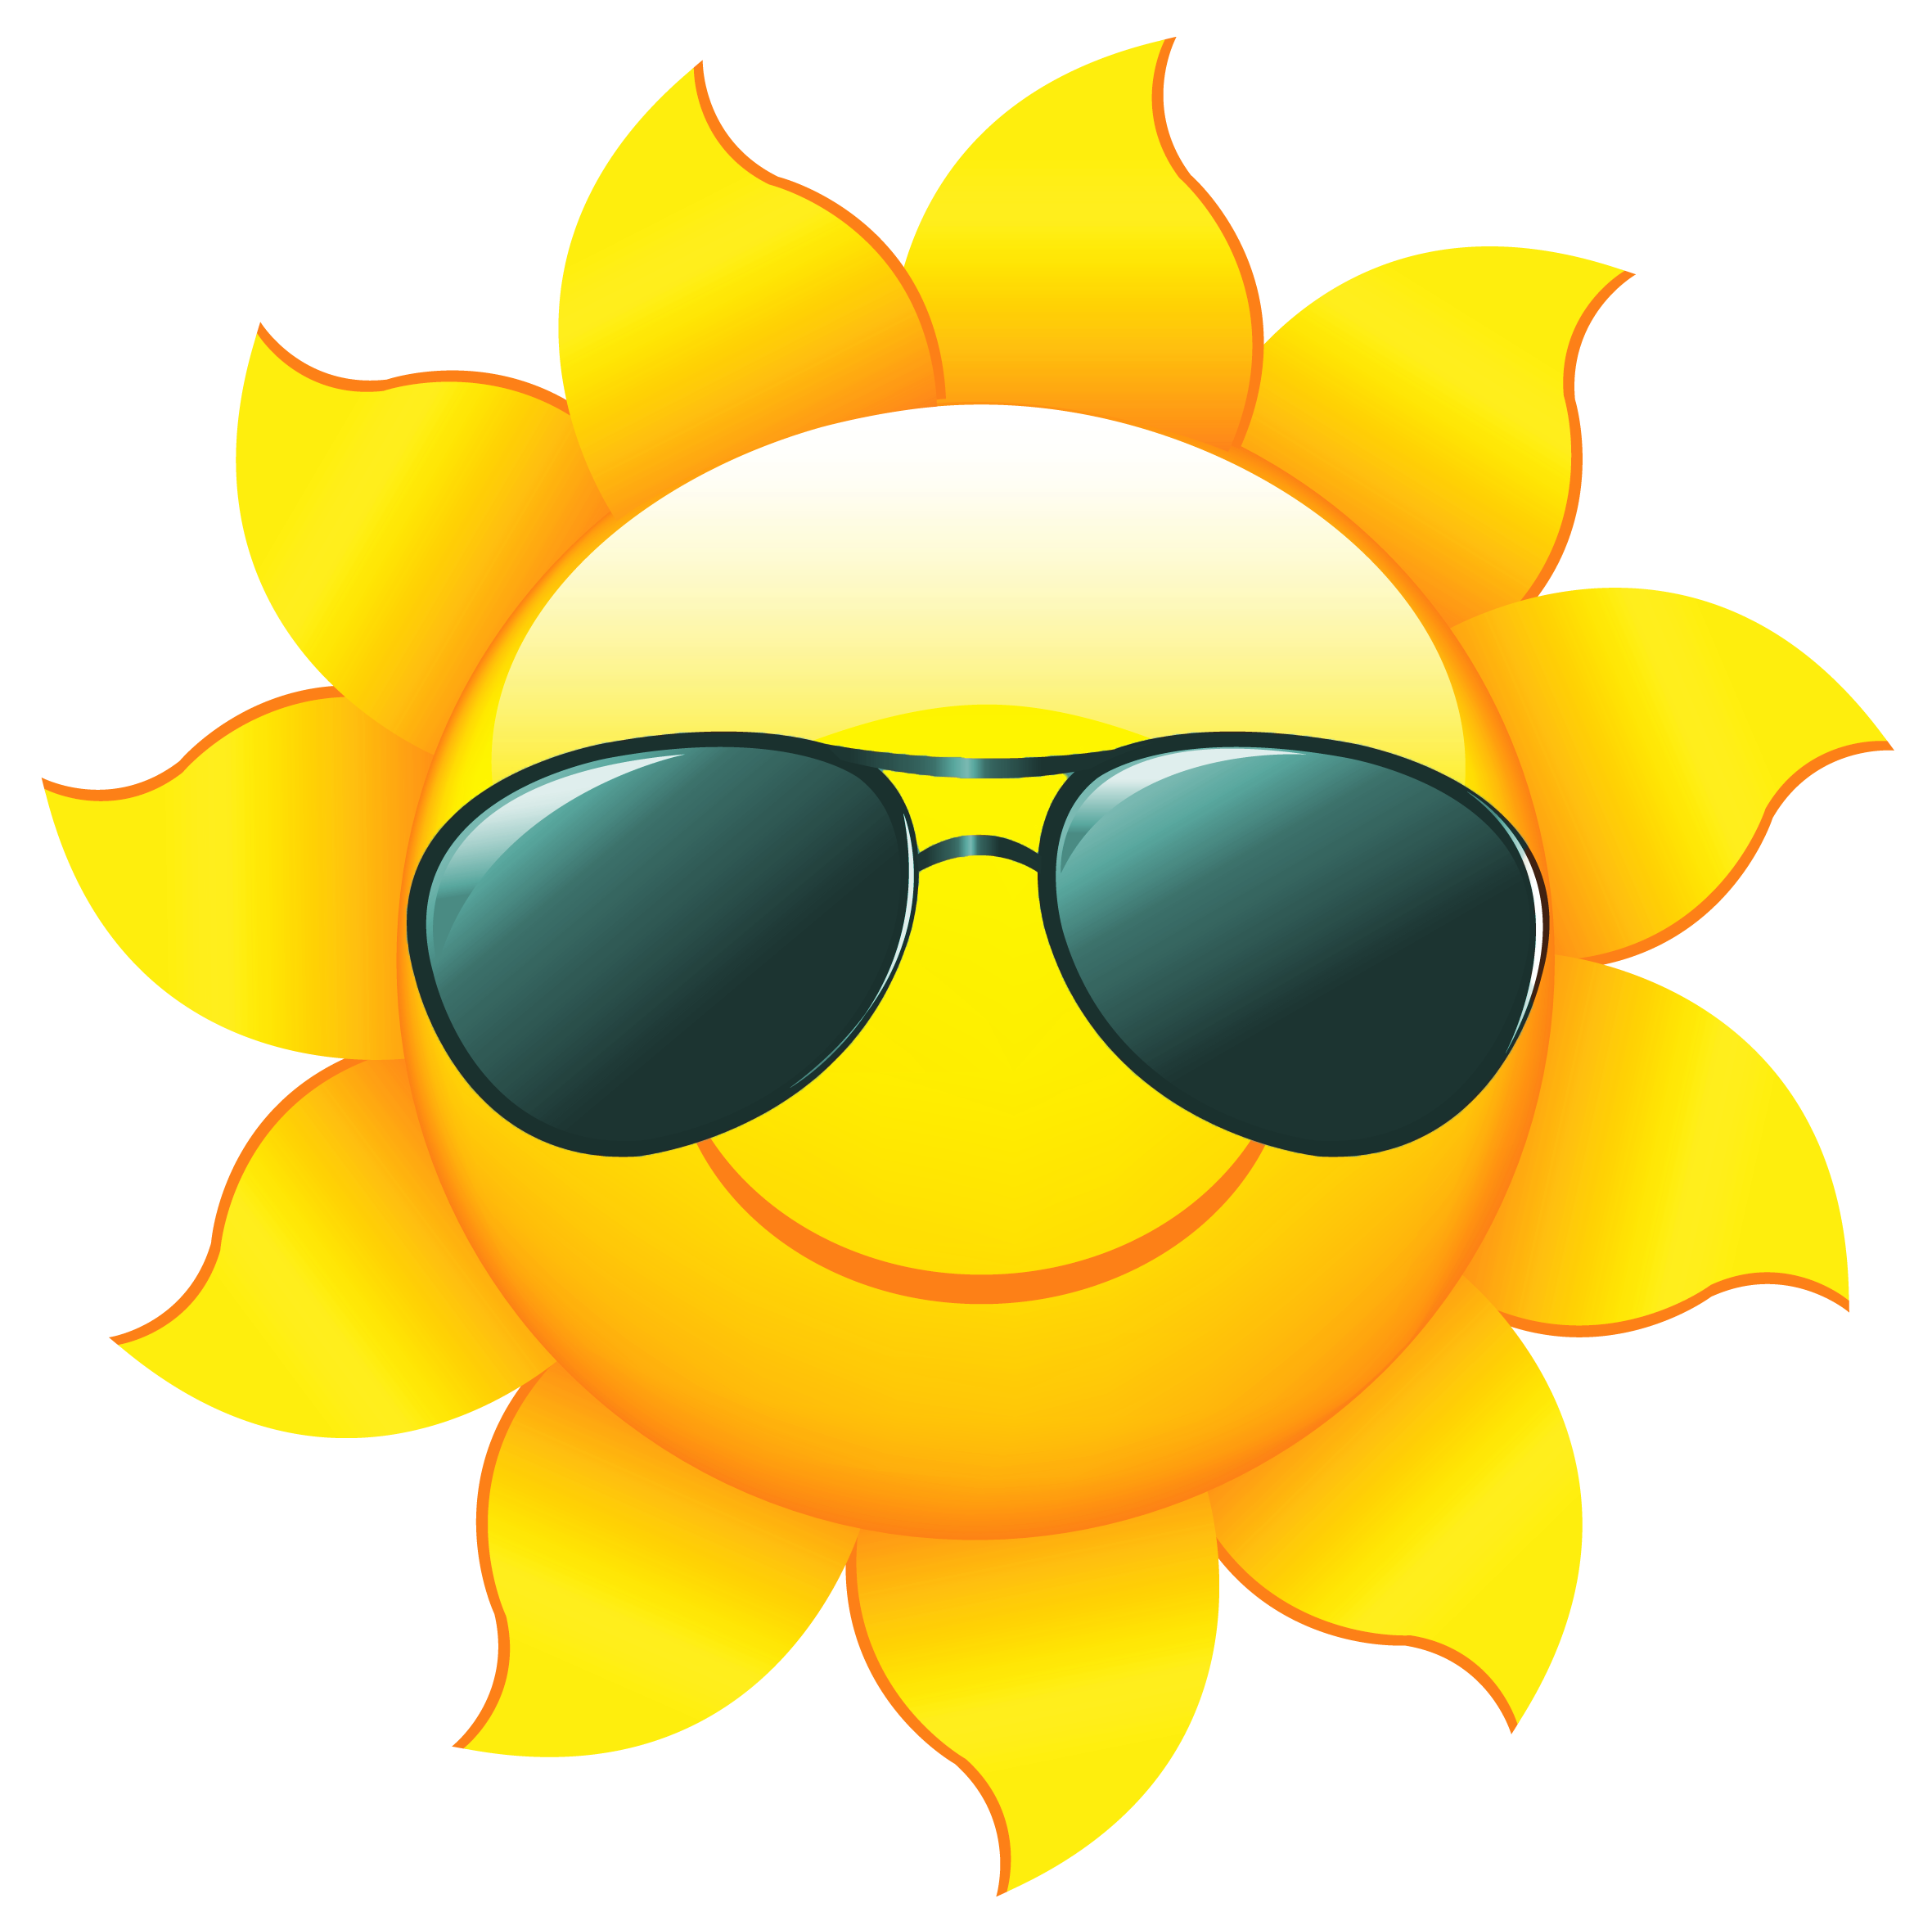 Sunshine-sun-clip-art-with-transparent-background-free.png